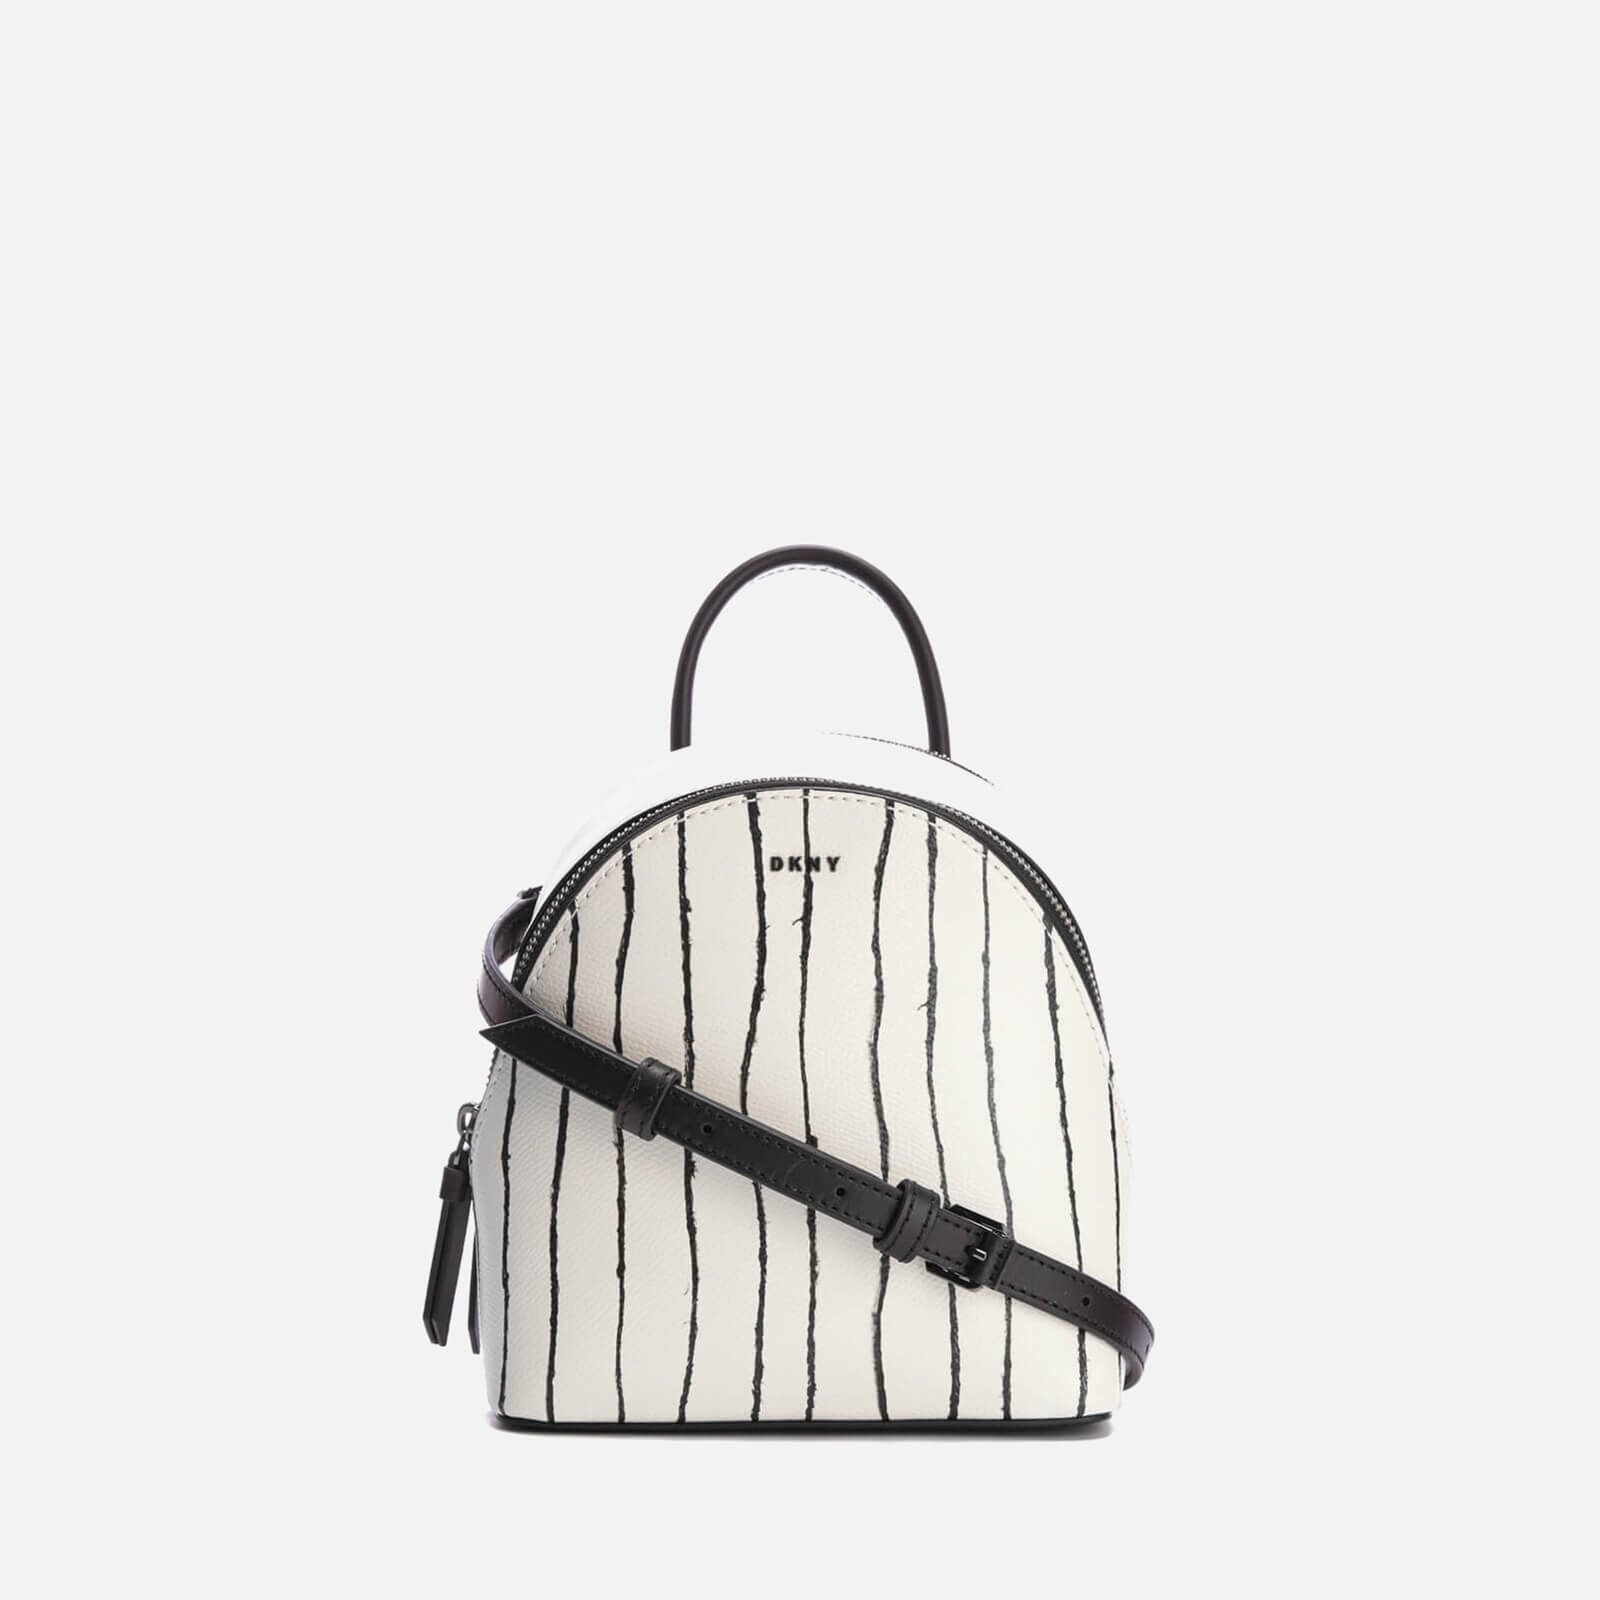 bd76394d09 DKNY Women s Mini Backpack - Twine Stripe - Free UK Delivery over £50